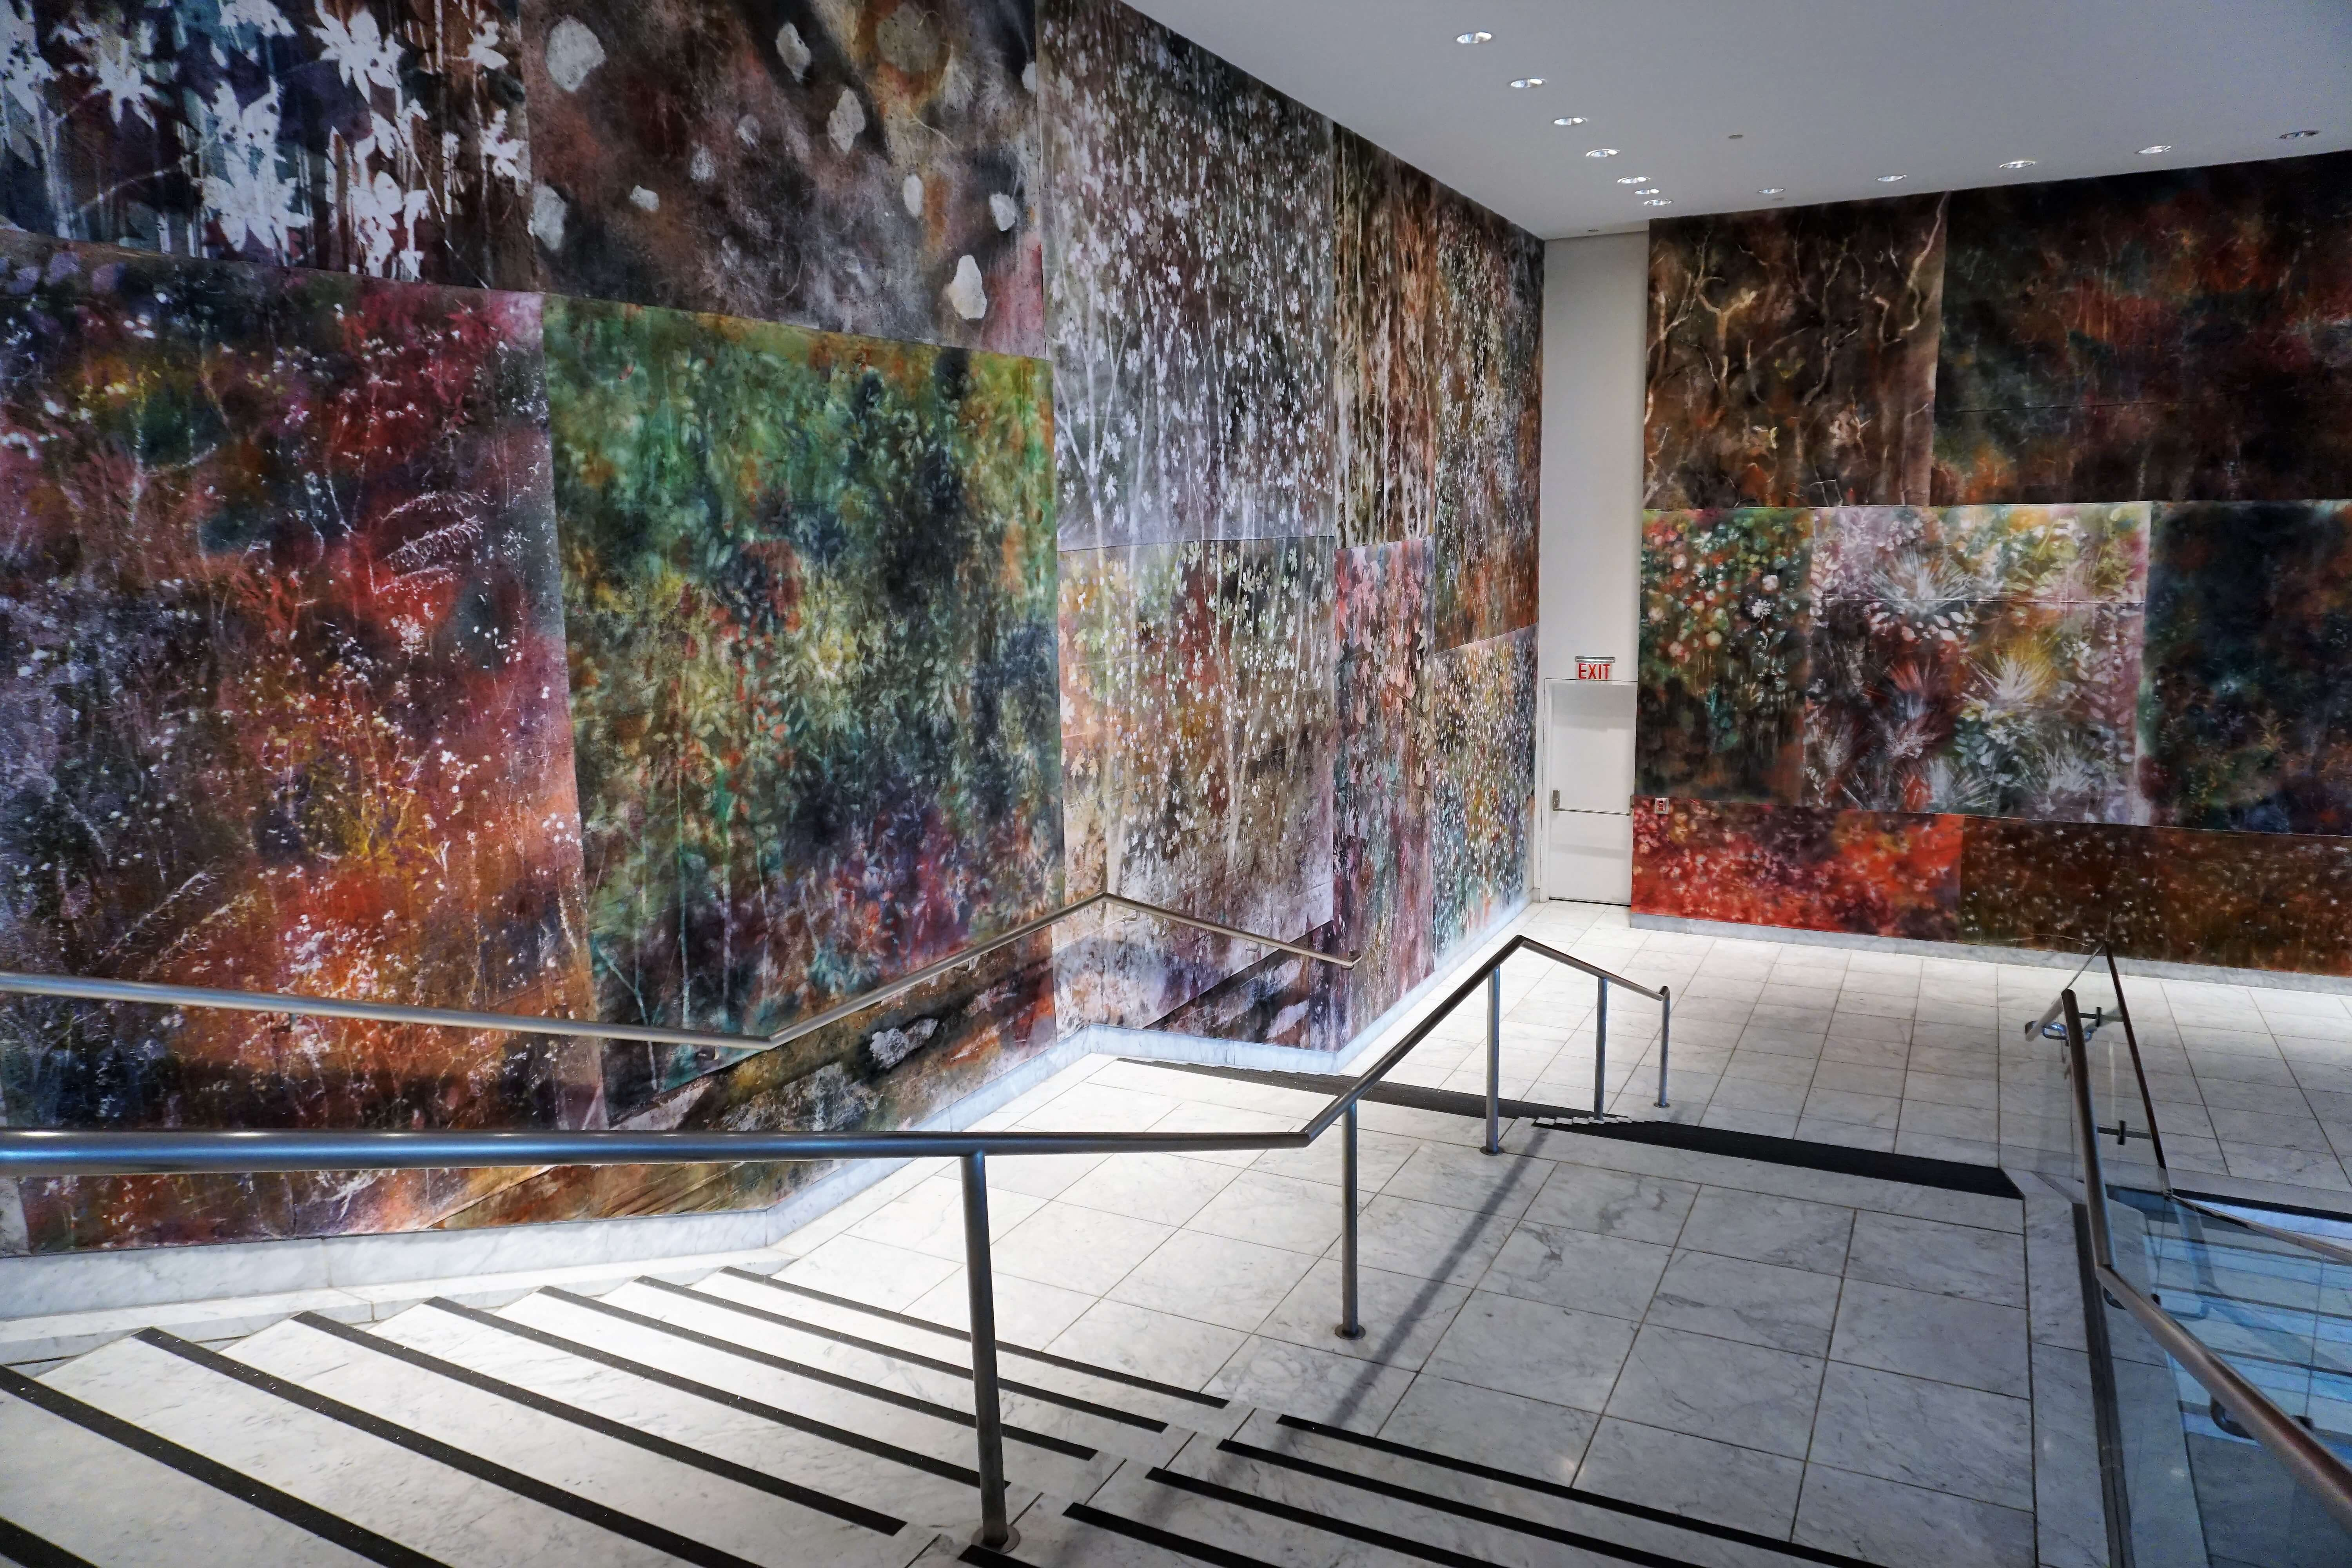 Hammer Museum lobby decorated with colorful nature influenced art by Sam Falls